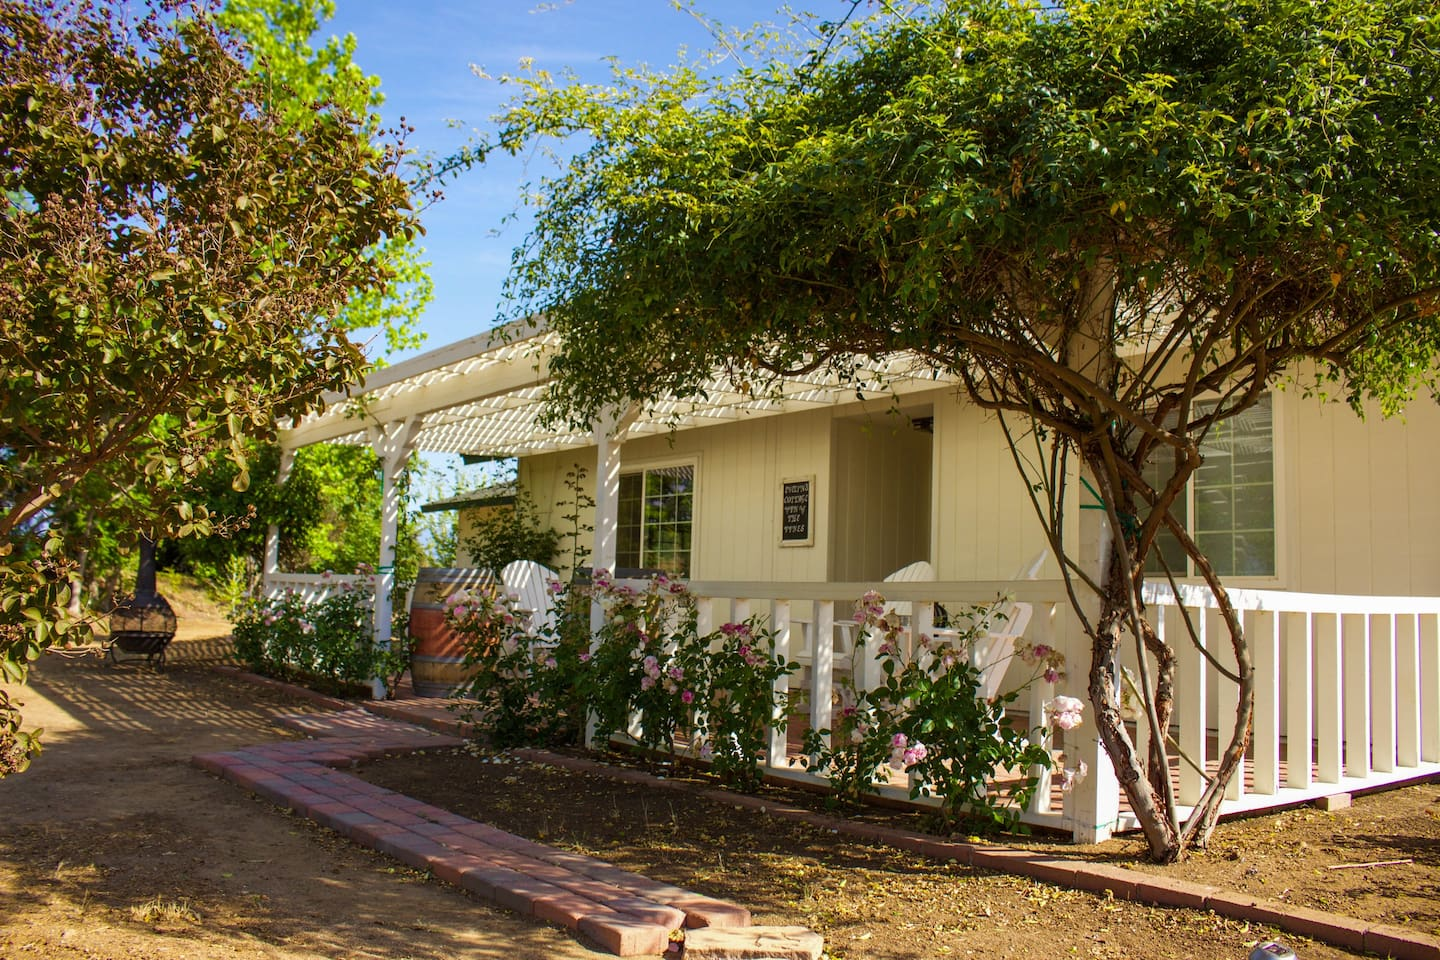 Temecula Wine Country Cottage in the Vines - Houses for Rent in ...